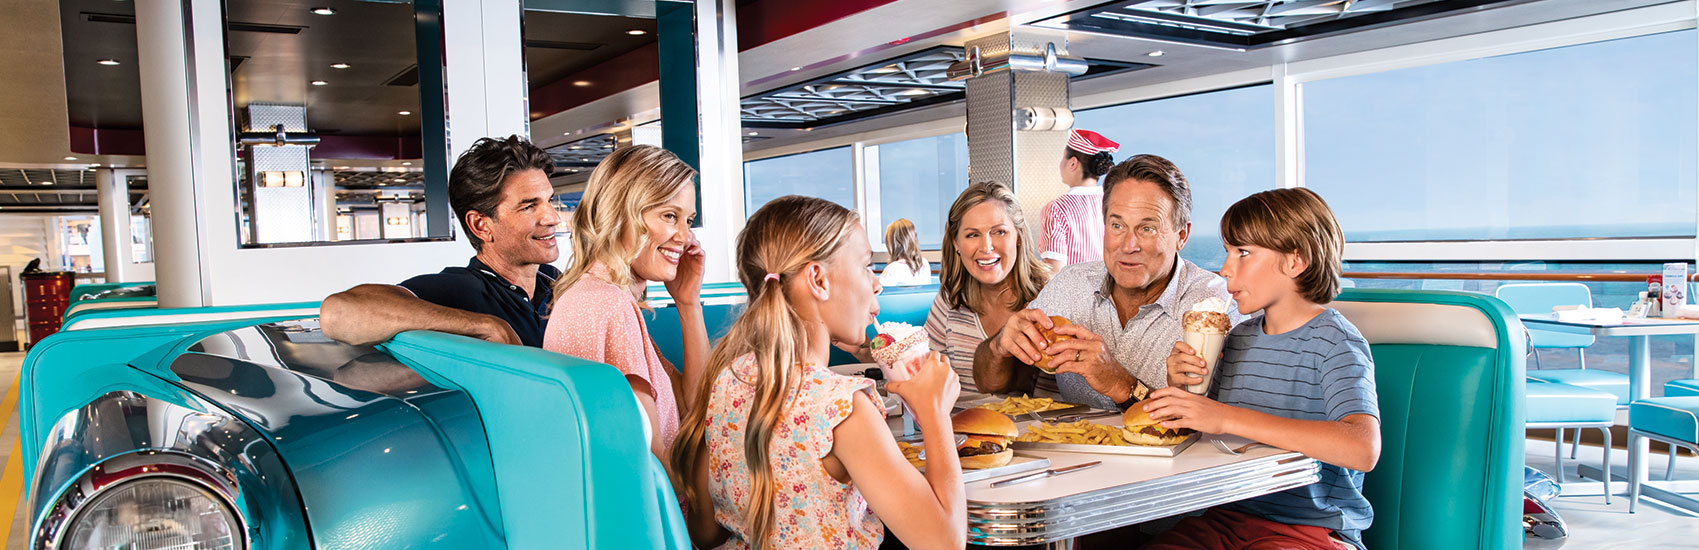 Celebrate Family with Norwegian Cruise Line 1